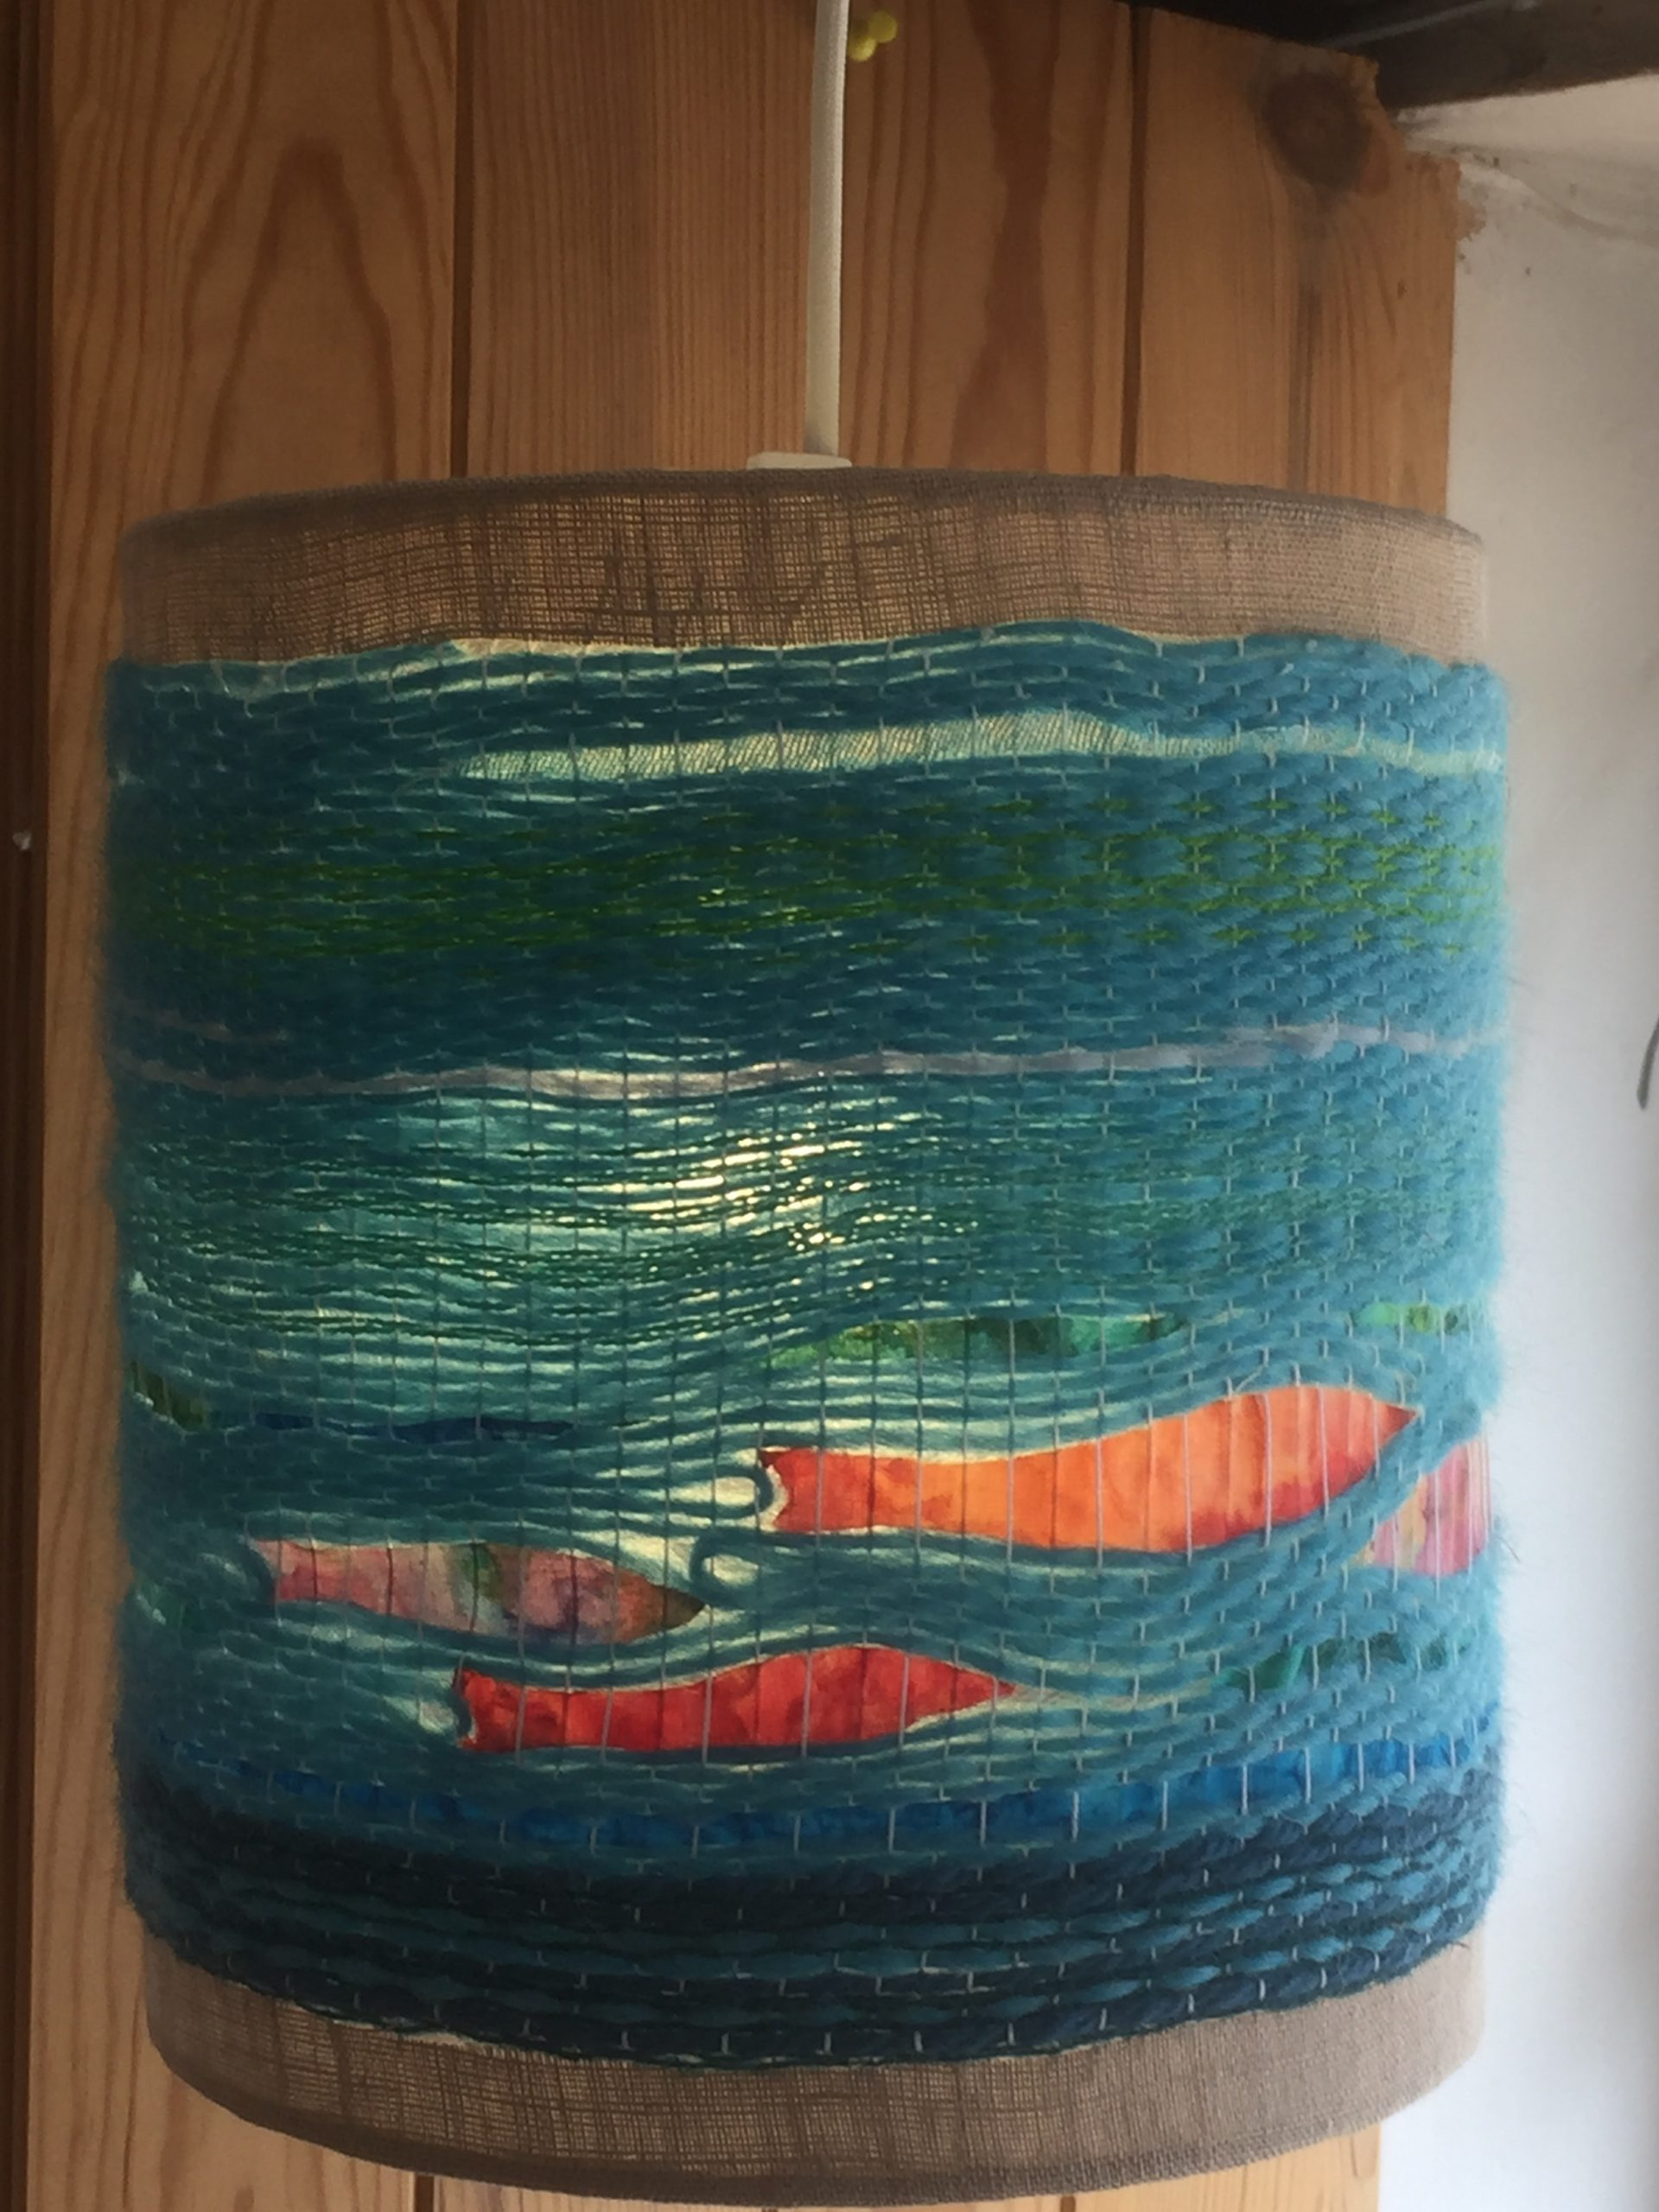 Lampshade with water and fish design. 36€ (2 / 2)